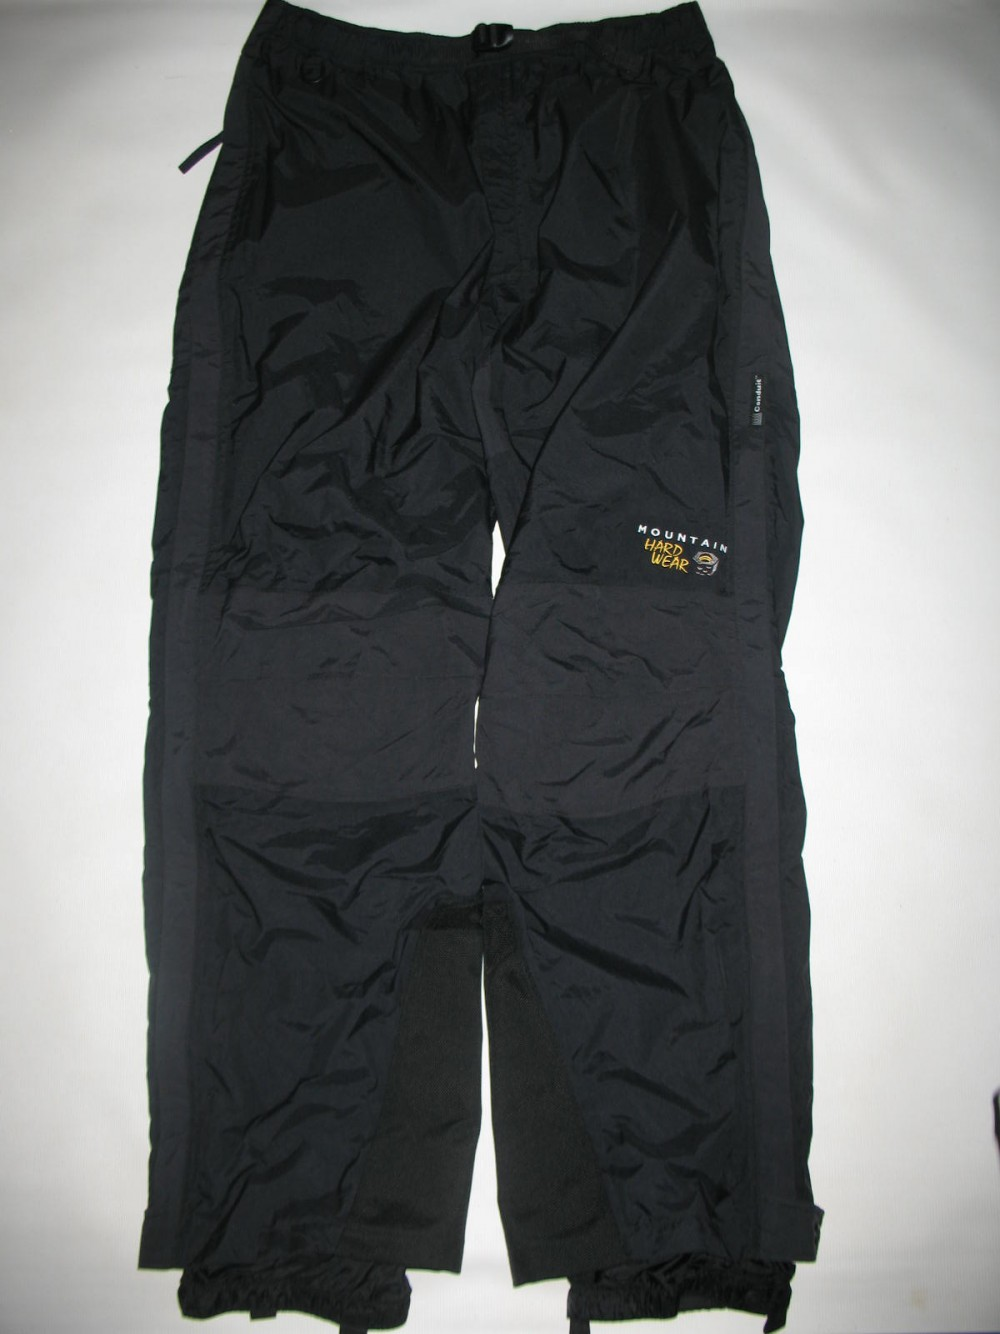 Штаны MOUNTAIN HARDWEAR hiking pants (размер XL) - 19329